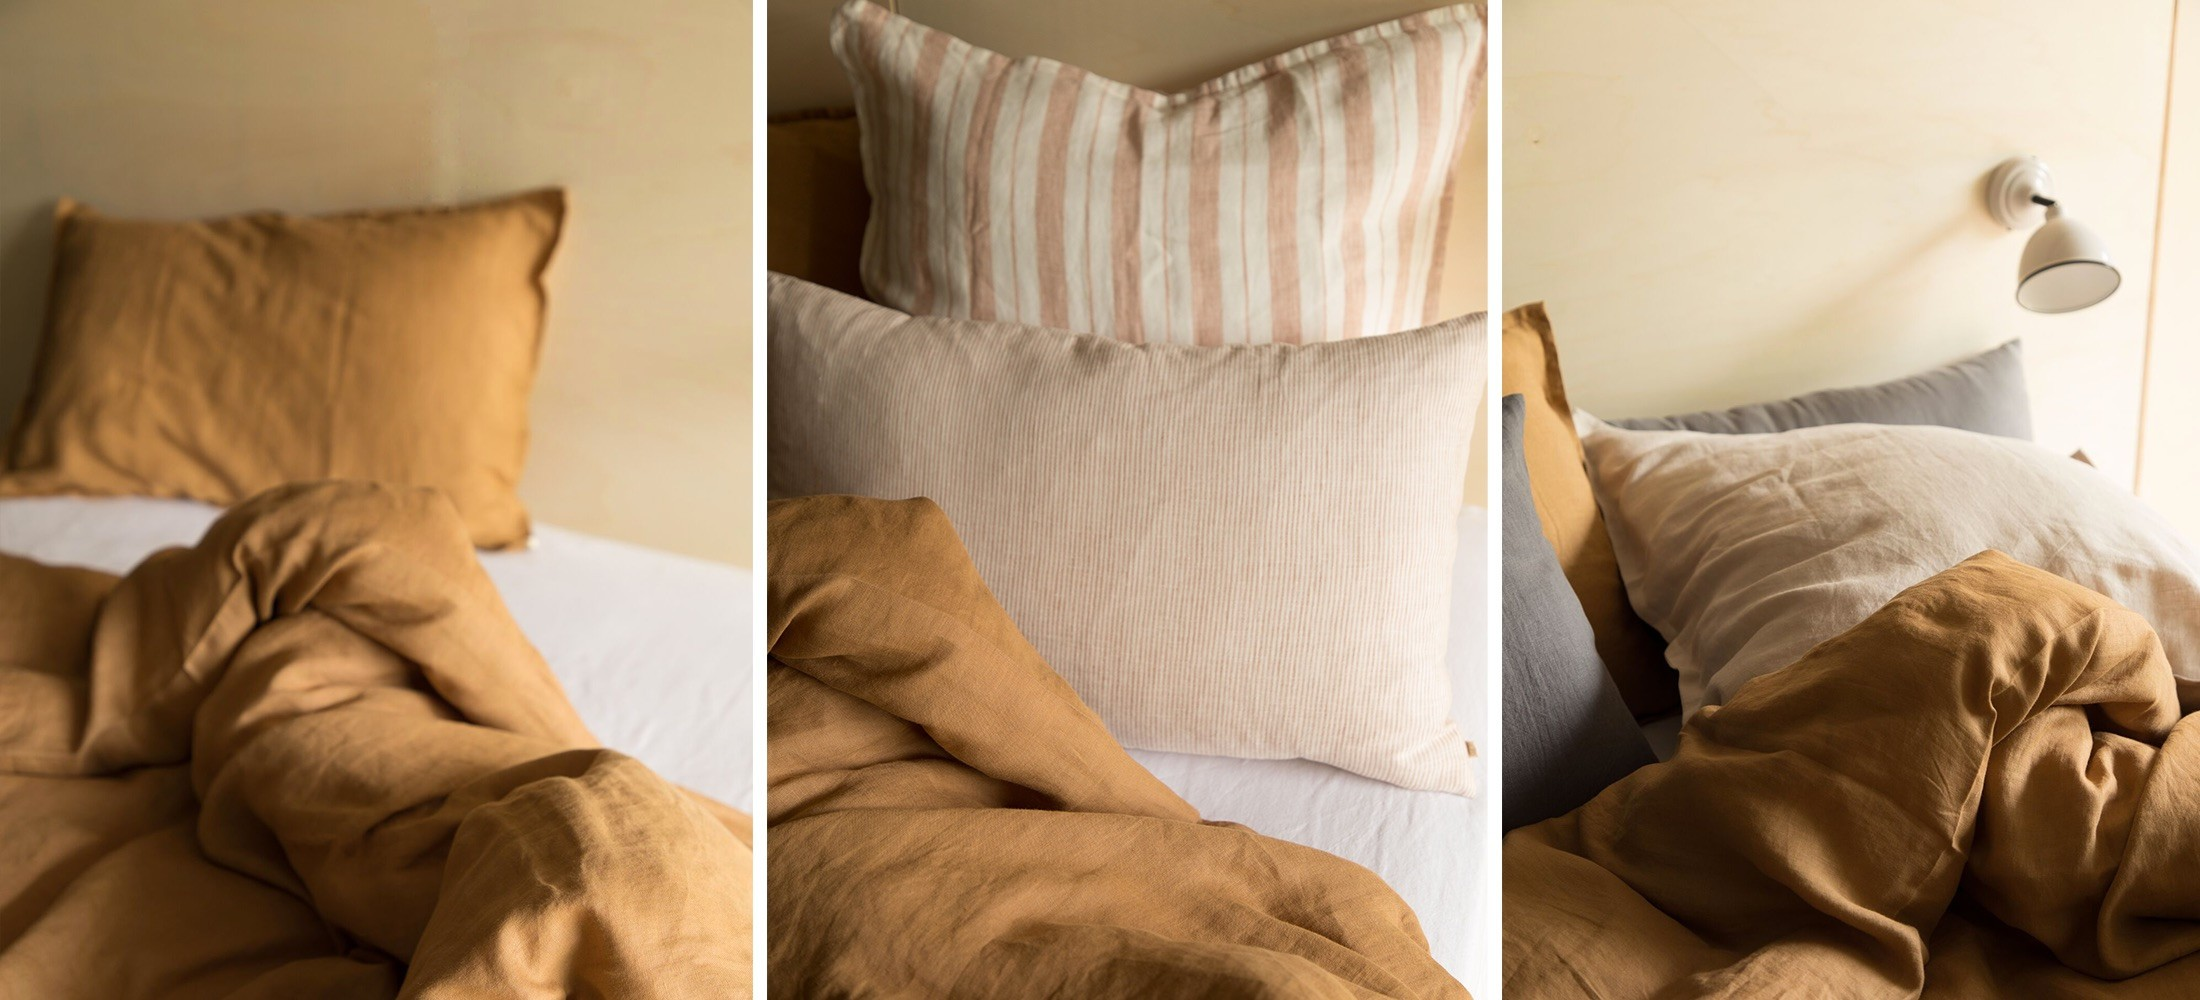 new in envolée collection: bedlinen, table linen, cushions, mattress and accessories